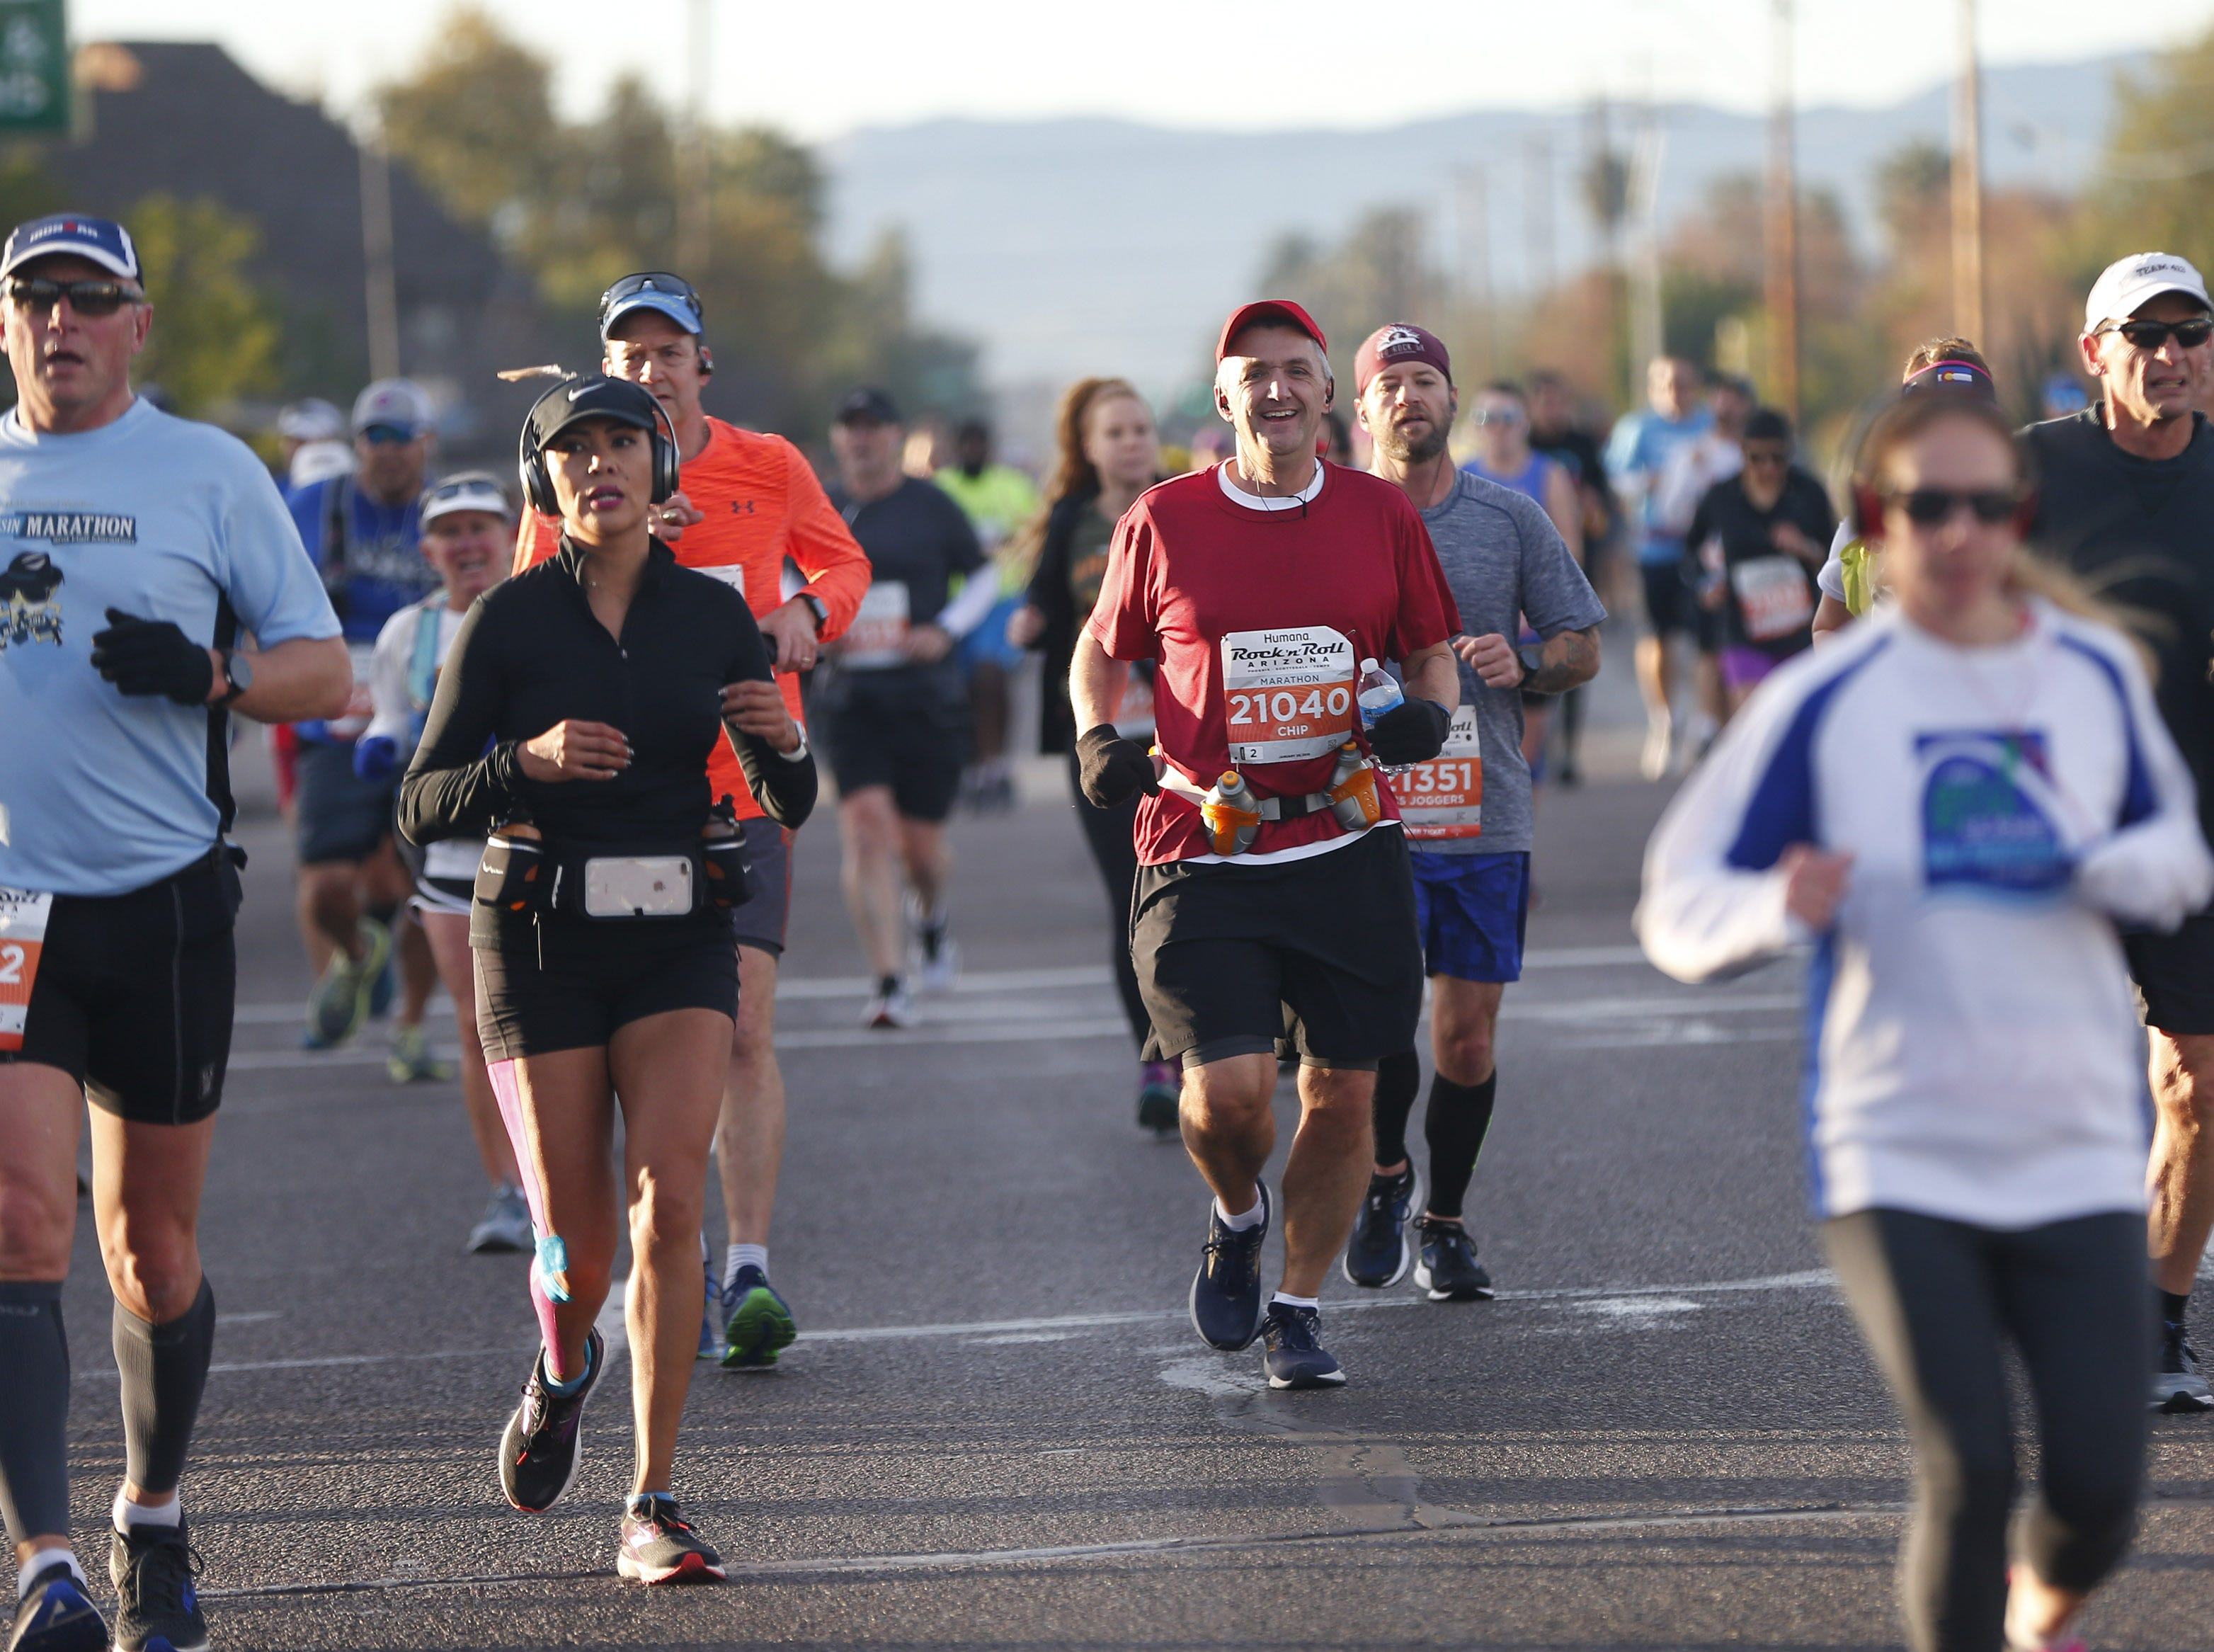 Runners make their way up 7th Ave. during the Rock 'n' Roll Marathon in Phoenix, Jan. 20, 2019.